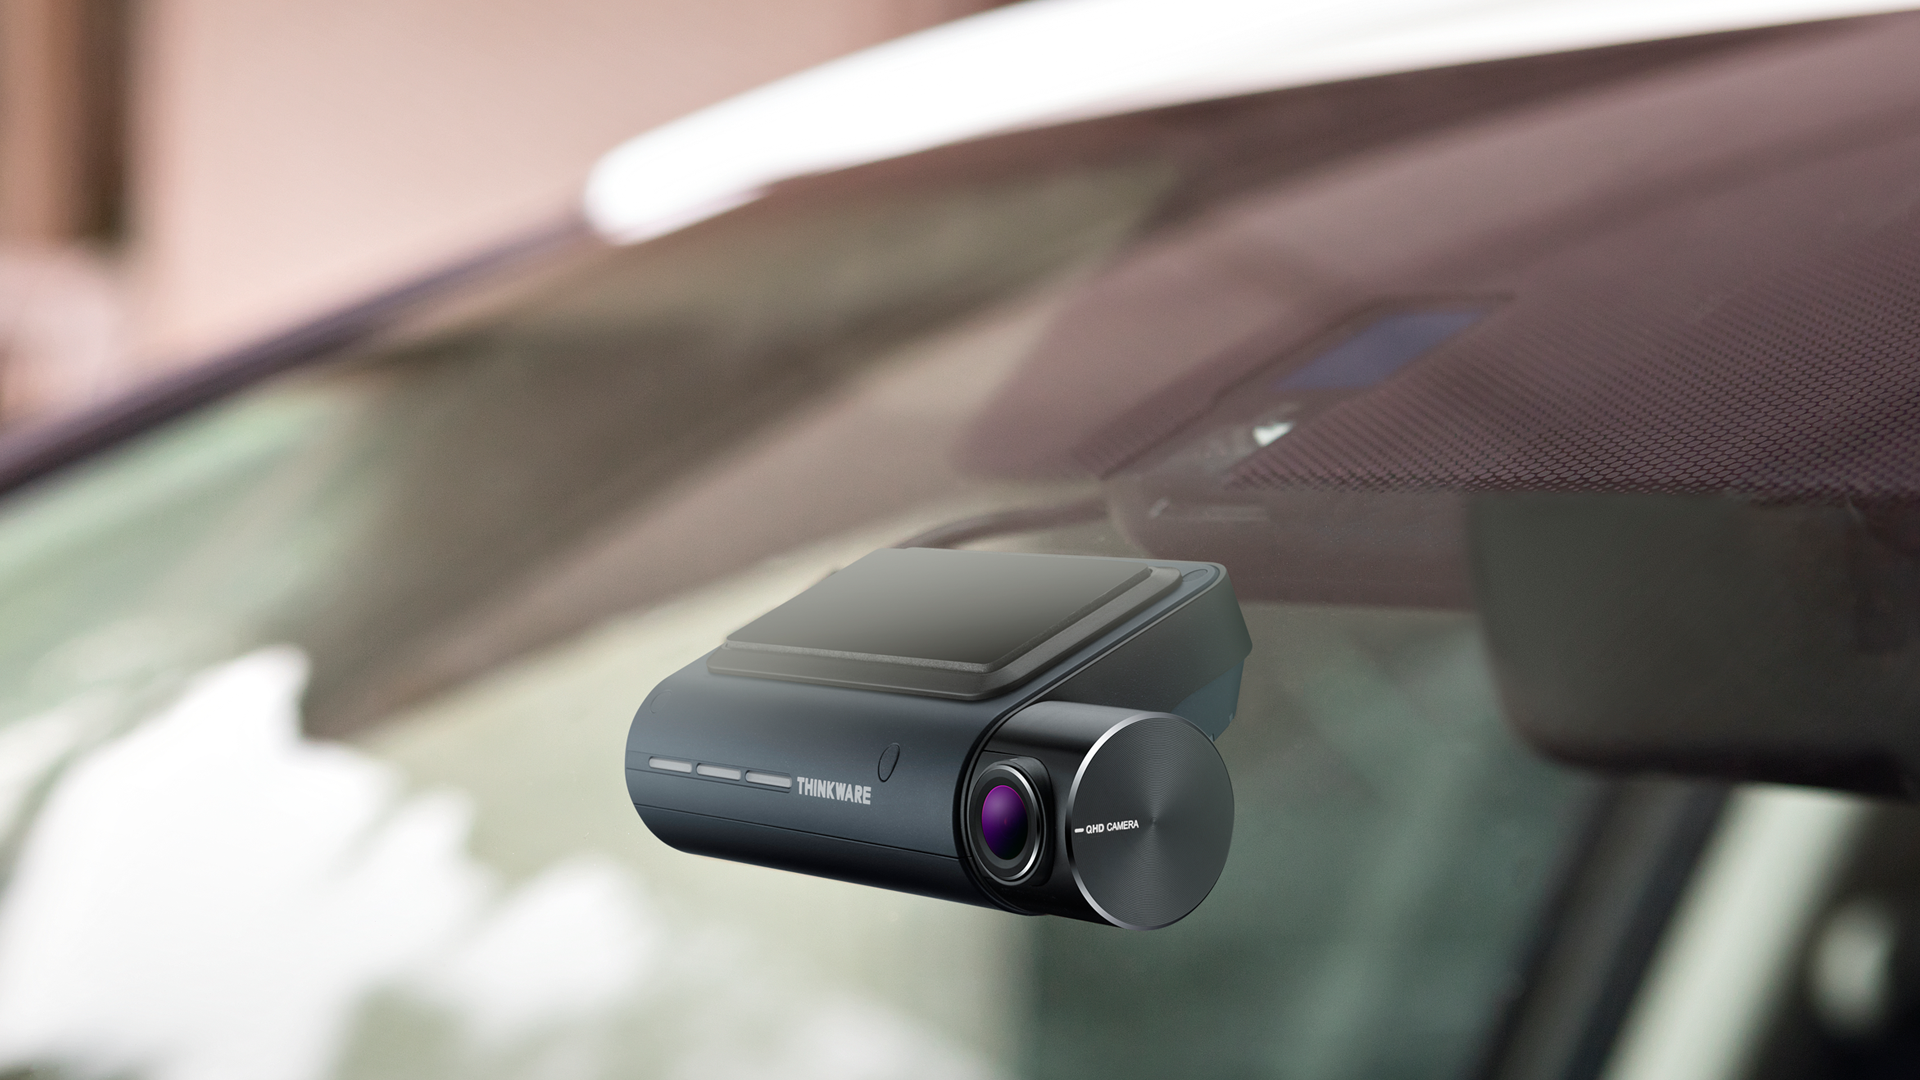 Sicurez Automotive Solution | THINKWARE Q800 PRO